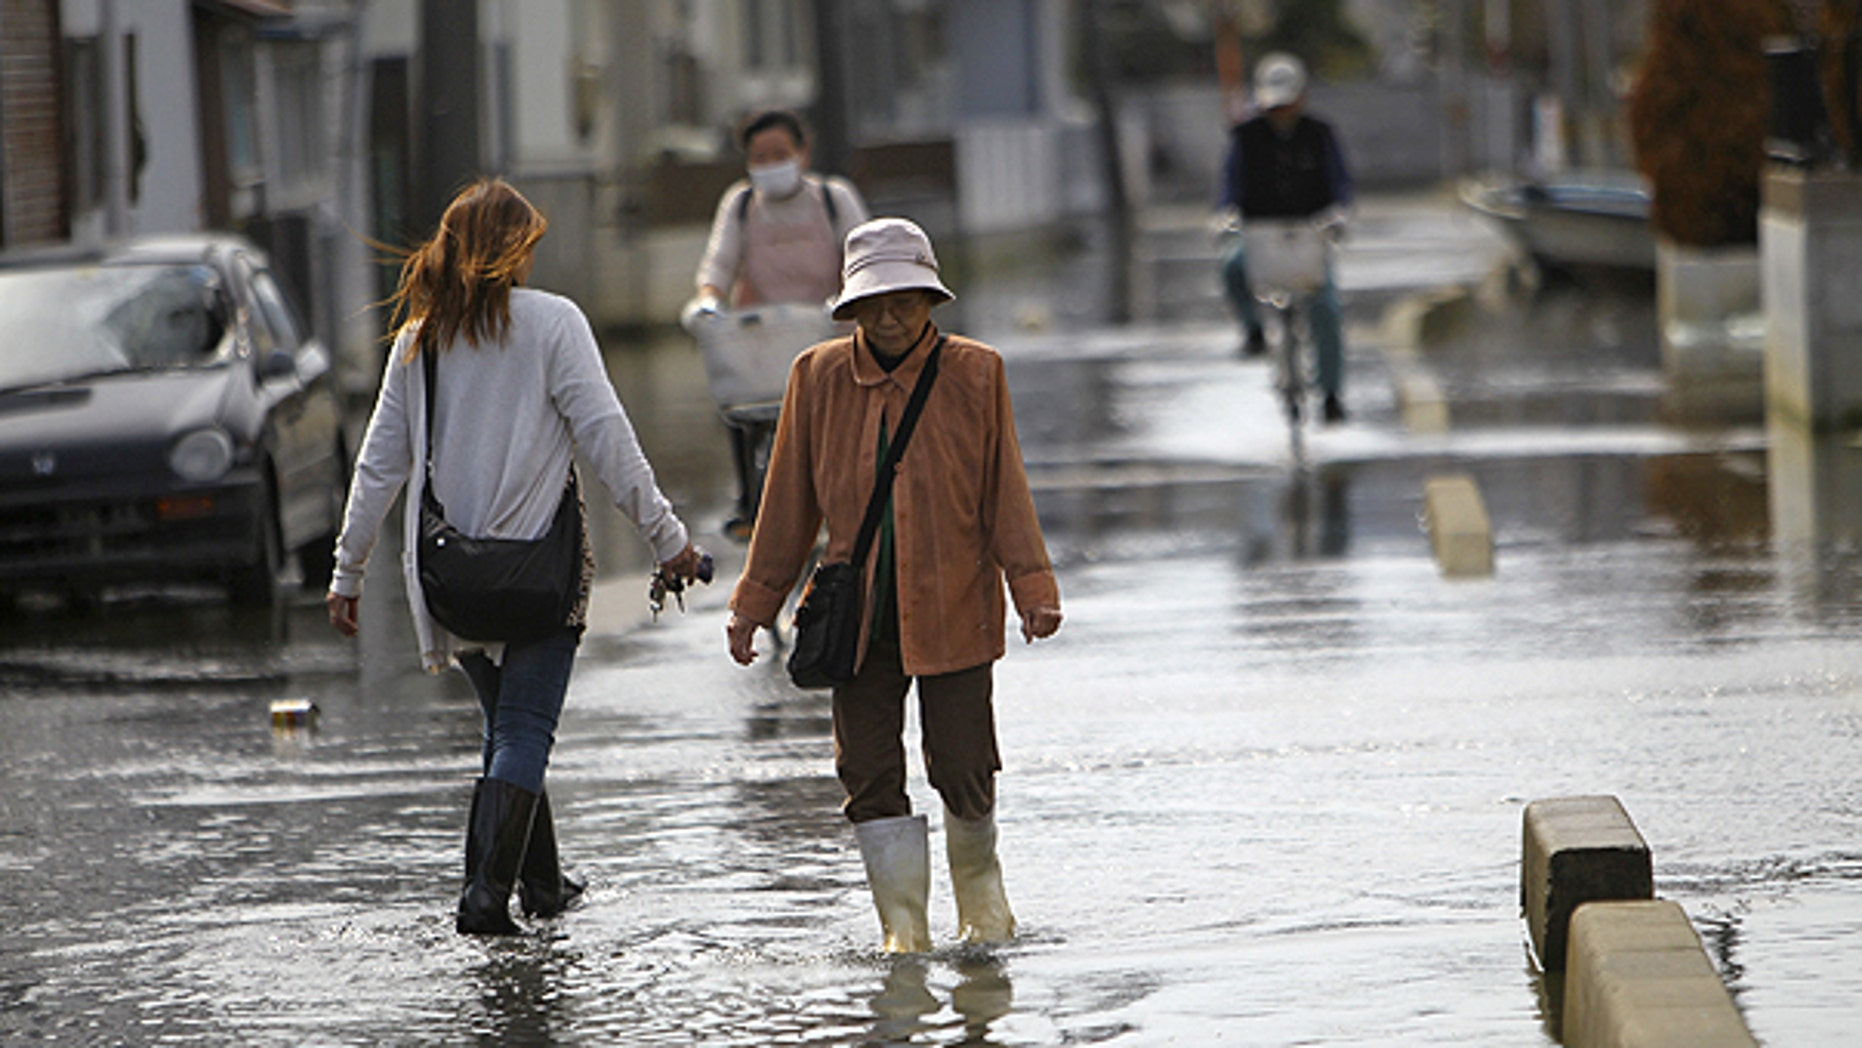 May 3: esidents stroll in a flooded street in Ishinomaki, Miyagi Prefecture, Japan. The area in this part of the city sunk nearly 2 feet 7 inches (0.8 meter) following the March 11 earthquake and tsunami.